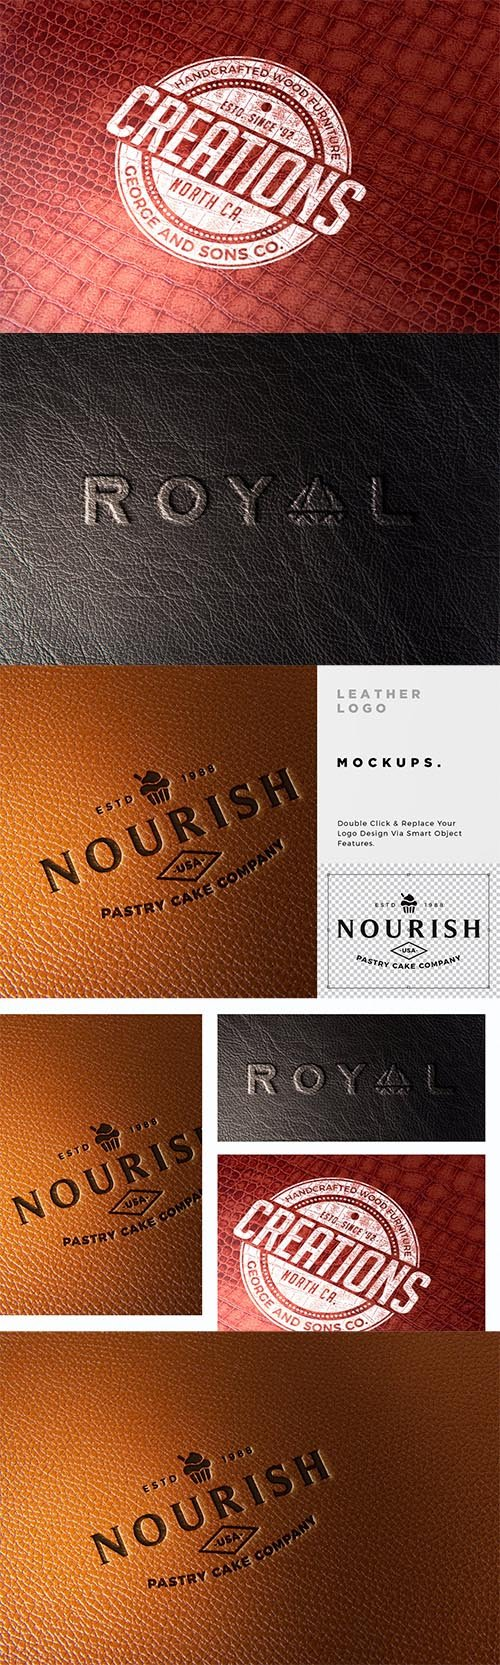 Leather Branding logo mockups PSD